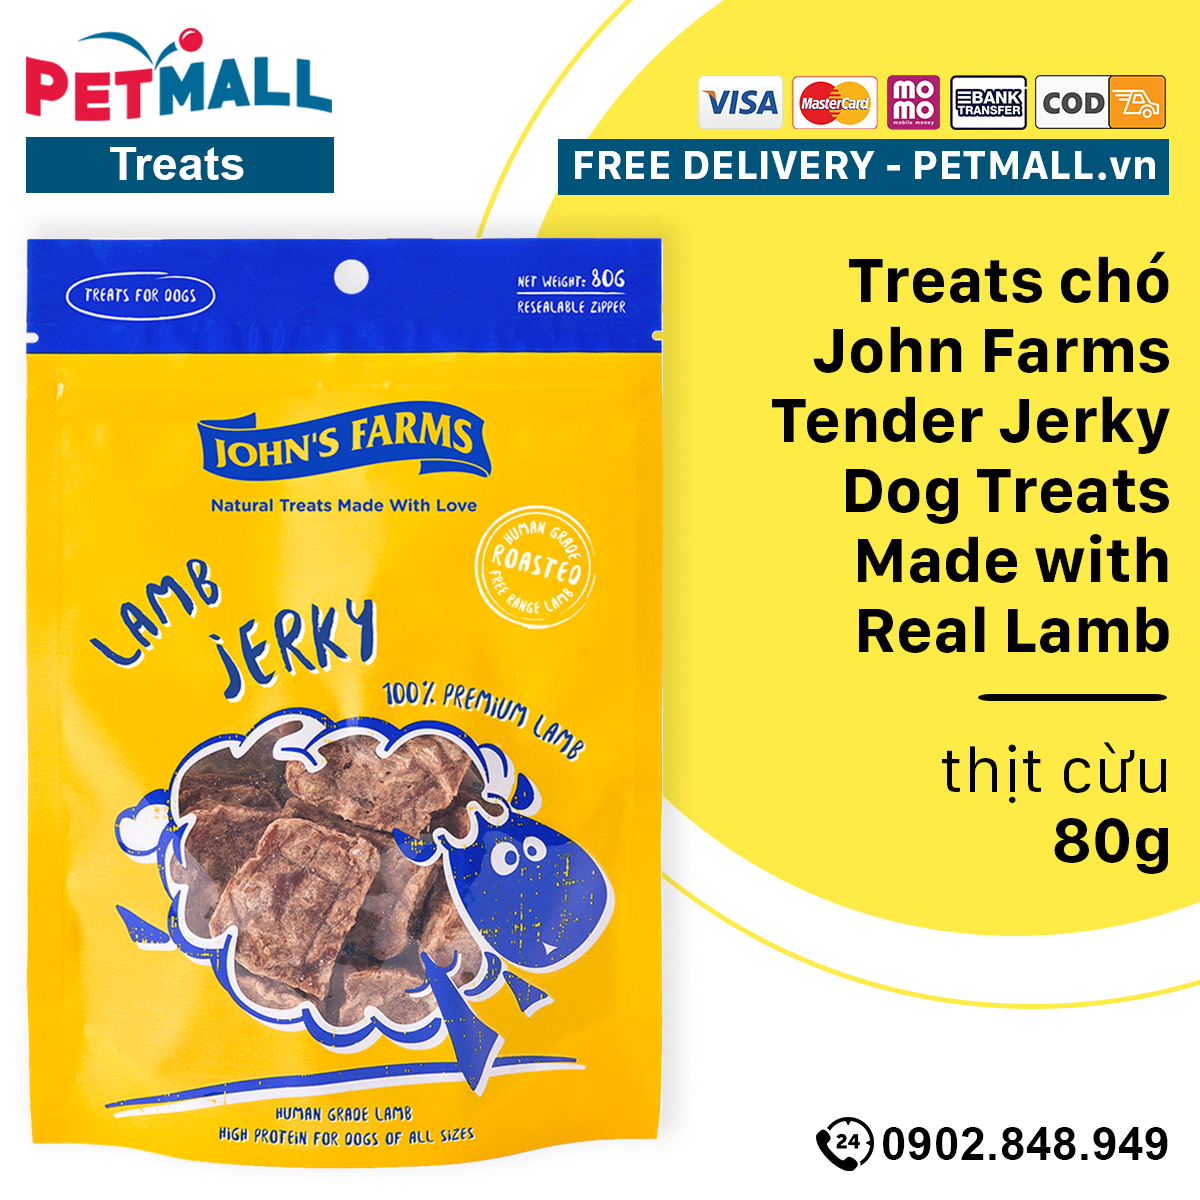 Treats chó John Farms Tender Jerky Dog Treats Made with Real Lamb - 80g - thịt cừu